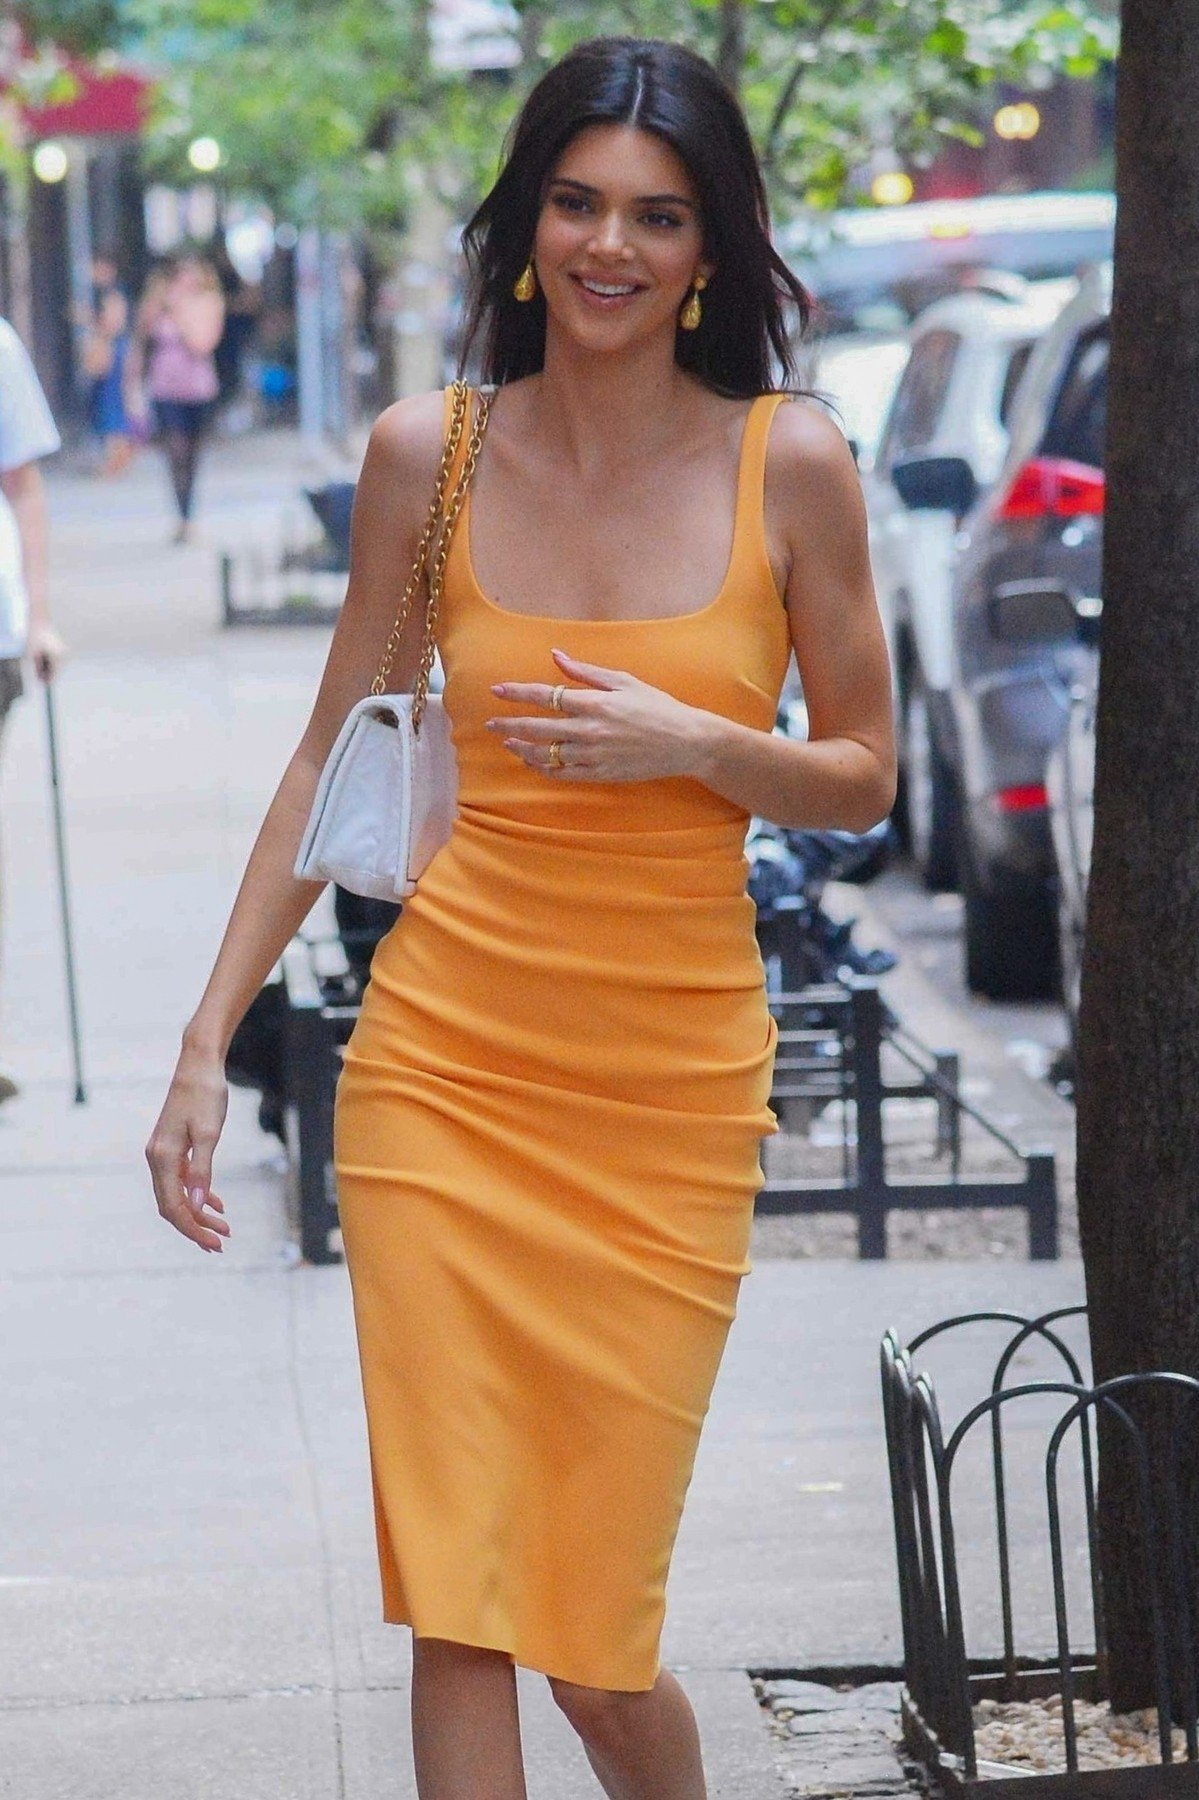 New York, NY  - Kendall Jenner shows off her sensational smile on an outing in New York in a stylish dress and heels carrying a white Prada purse.  *UK Clients - Pictures Containing Children Please Pixelate Face Prior To Publication*, Image: 448819658, License: Rights-managed, Restrictions: , Model Release: no, Credit line: Profimedia, Backgrid USA